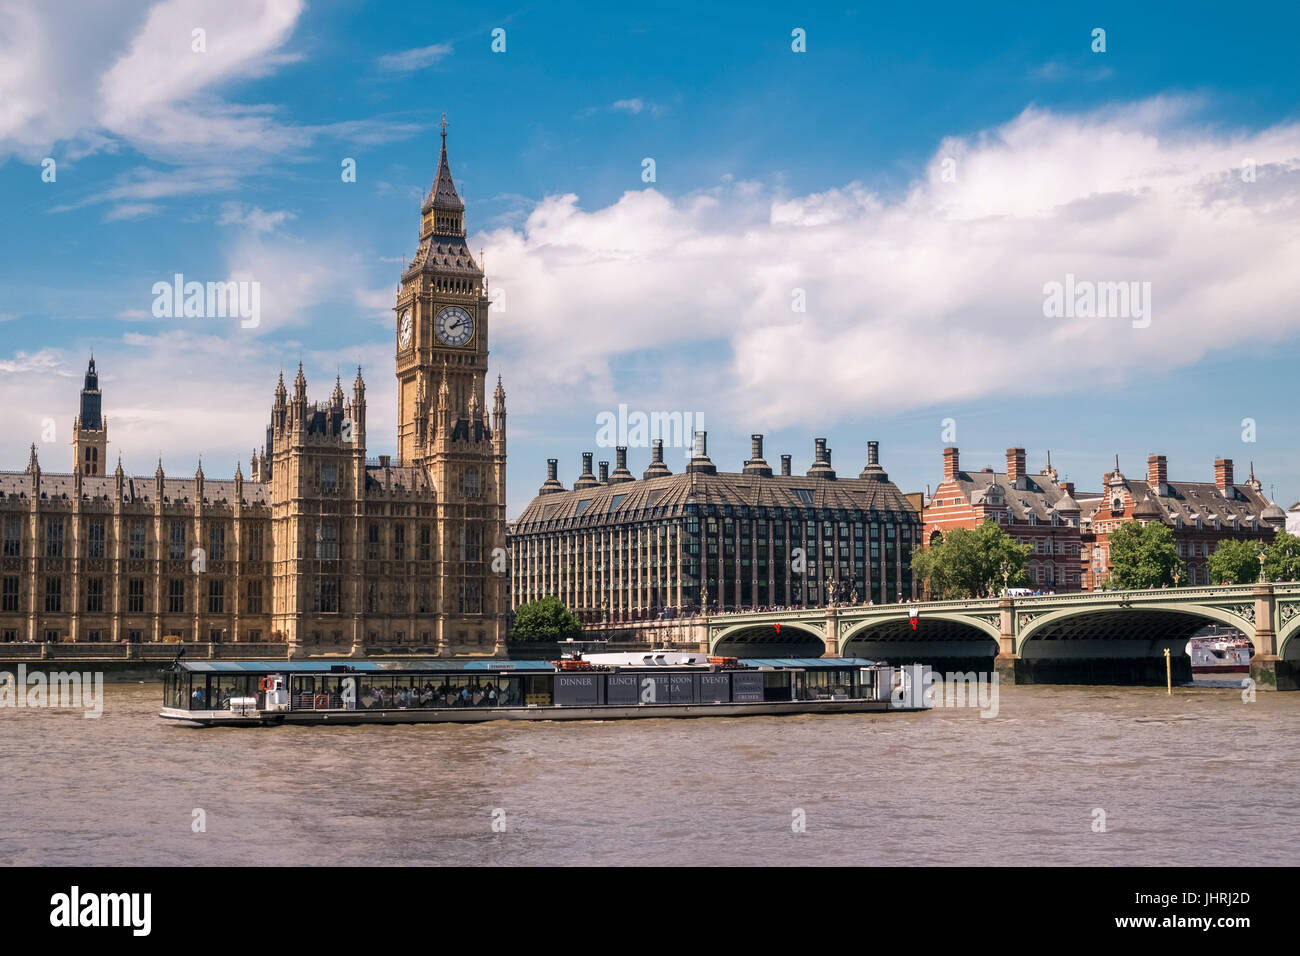 Tourists aboard a floating river restaurant on the river Thames outside the Houses of Parliament, Westminster, London, - Stock Image